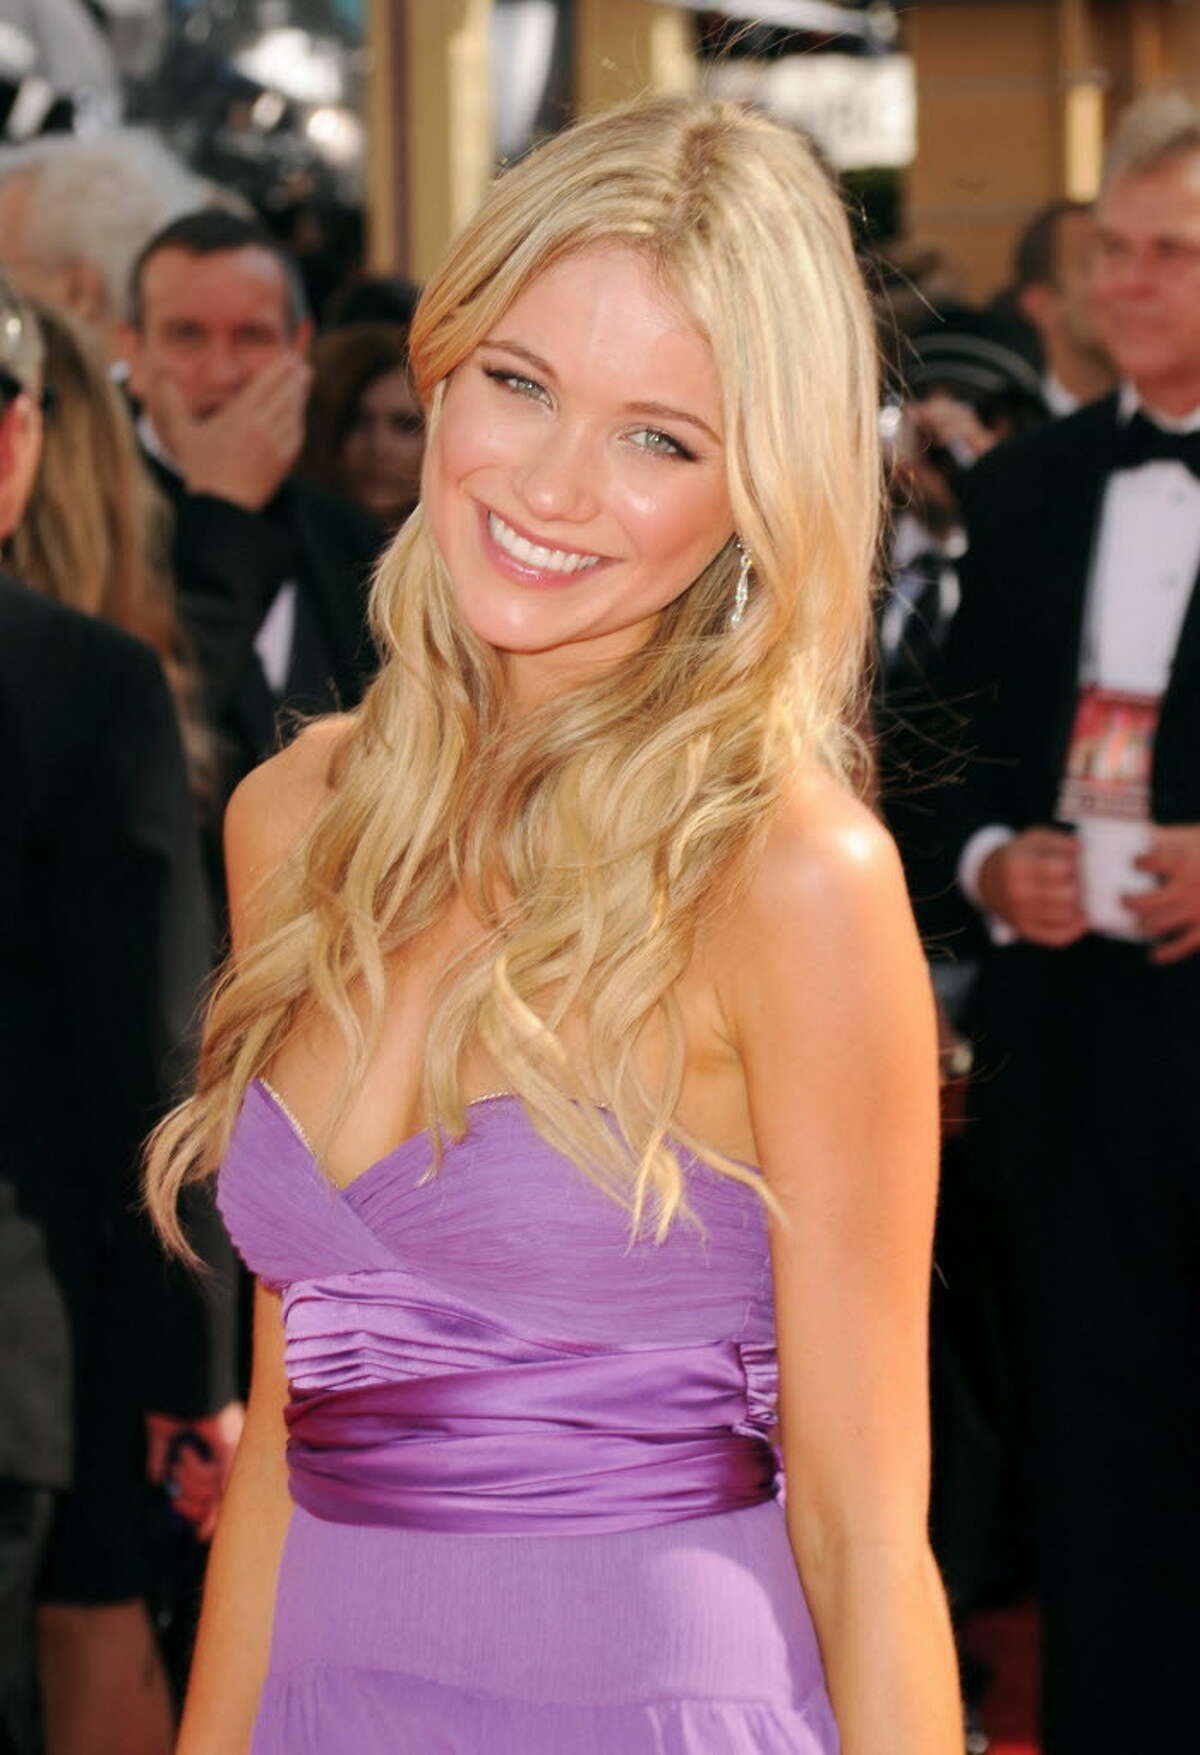 Actress Katrina Bowden arrives at the 62nd Annual Primetime Emmy Awards held at the Nokia Theatre L.A. Live on August 29, 2010 in Los Angeles, California. (Photo by Jason Merritt / Getty Images)